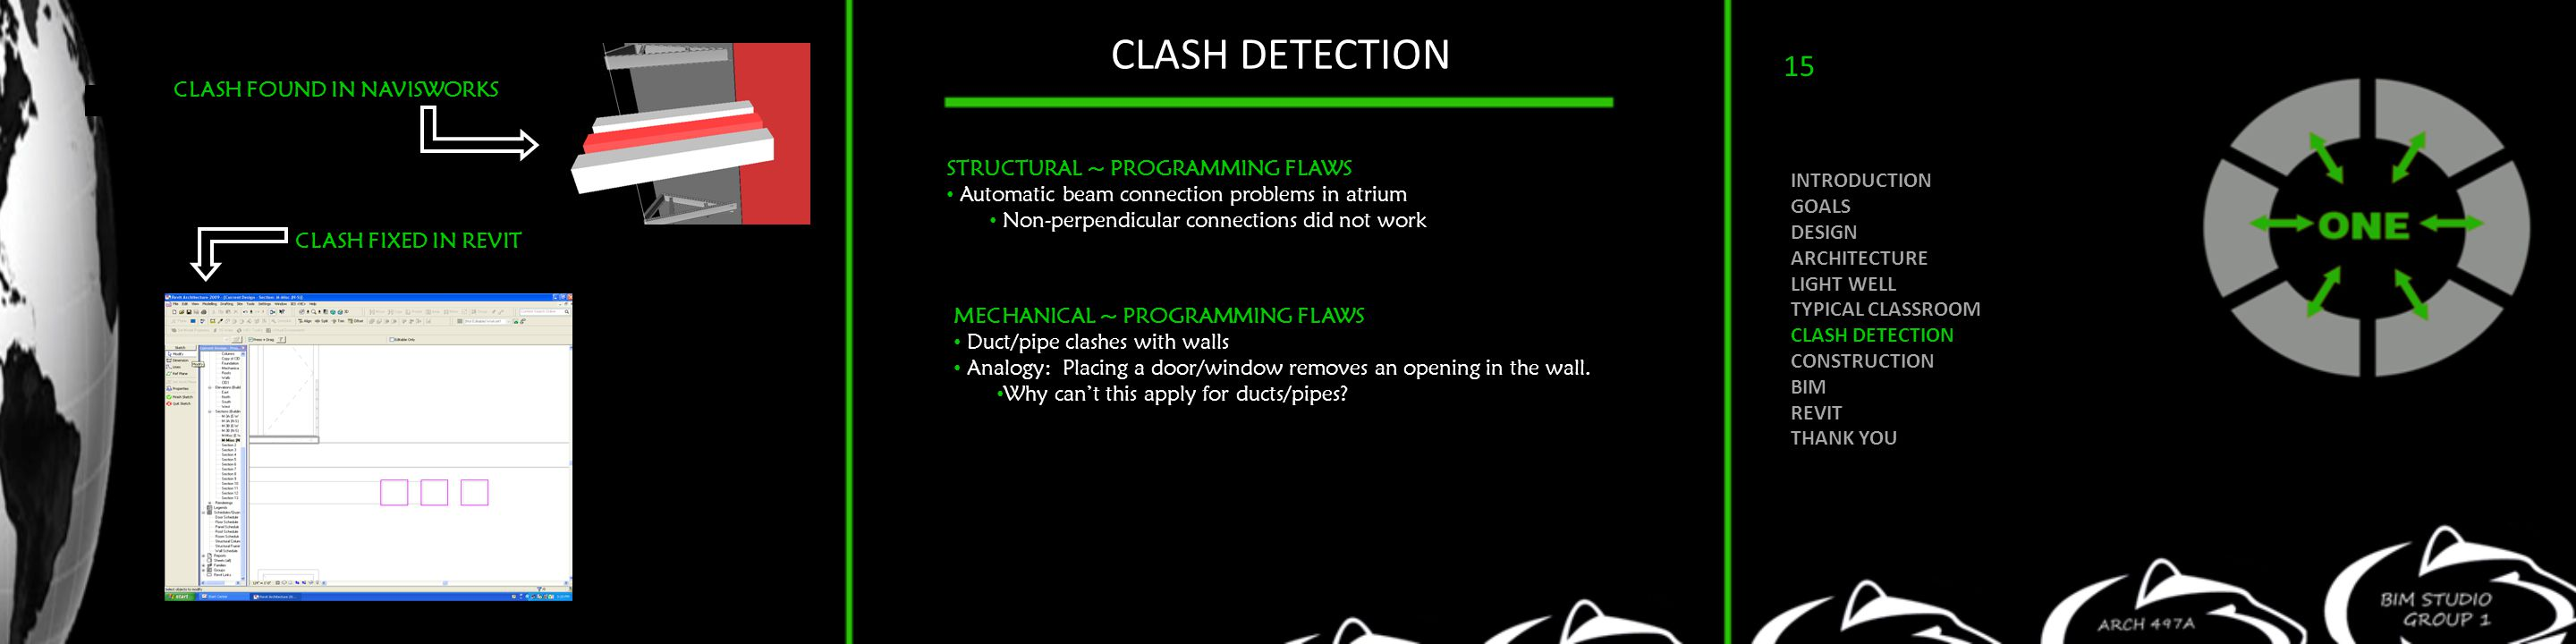 CLASH DETECTION STRUCTURAL ~ PROGRAMMING FLAWS Automatic beam connection problems in atrium Non-perpendicular connections did not work MECHANICAL ~ PR